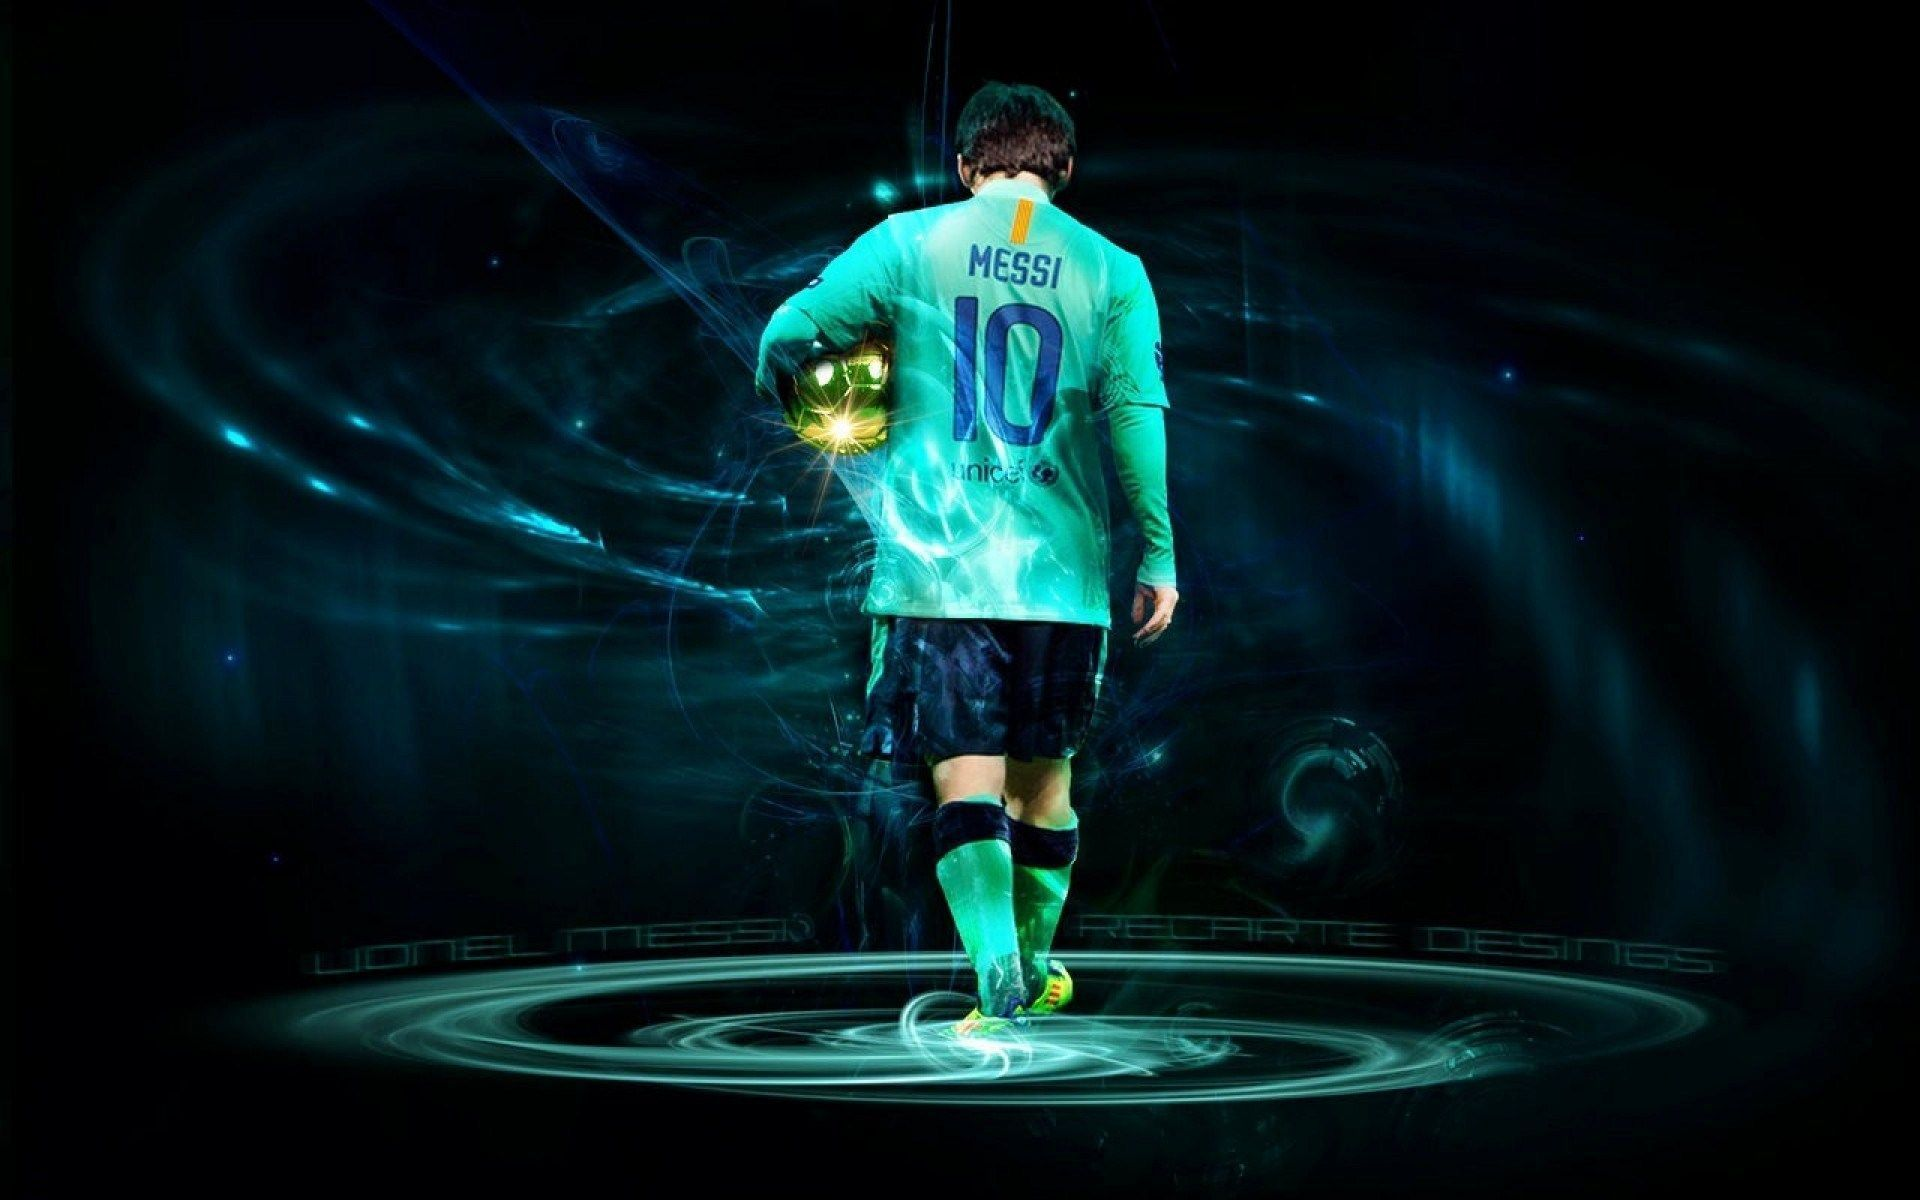 hd sports wallpapers top